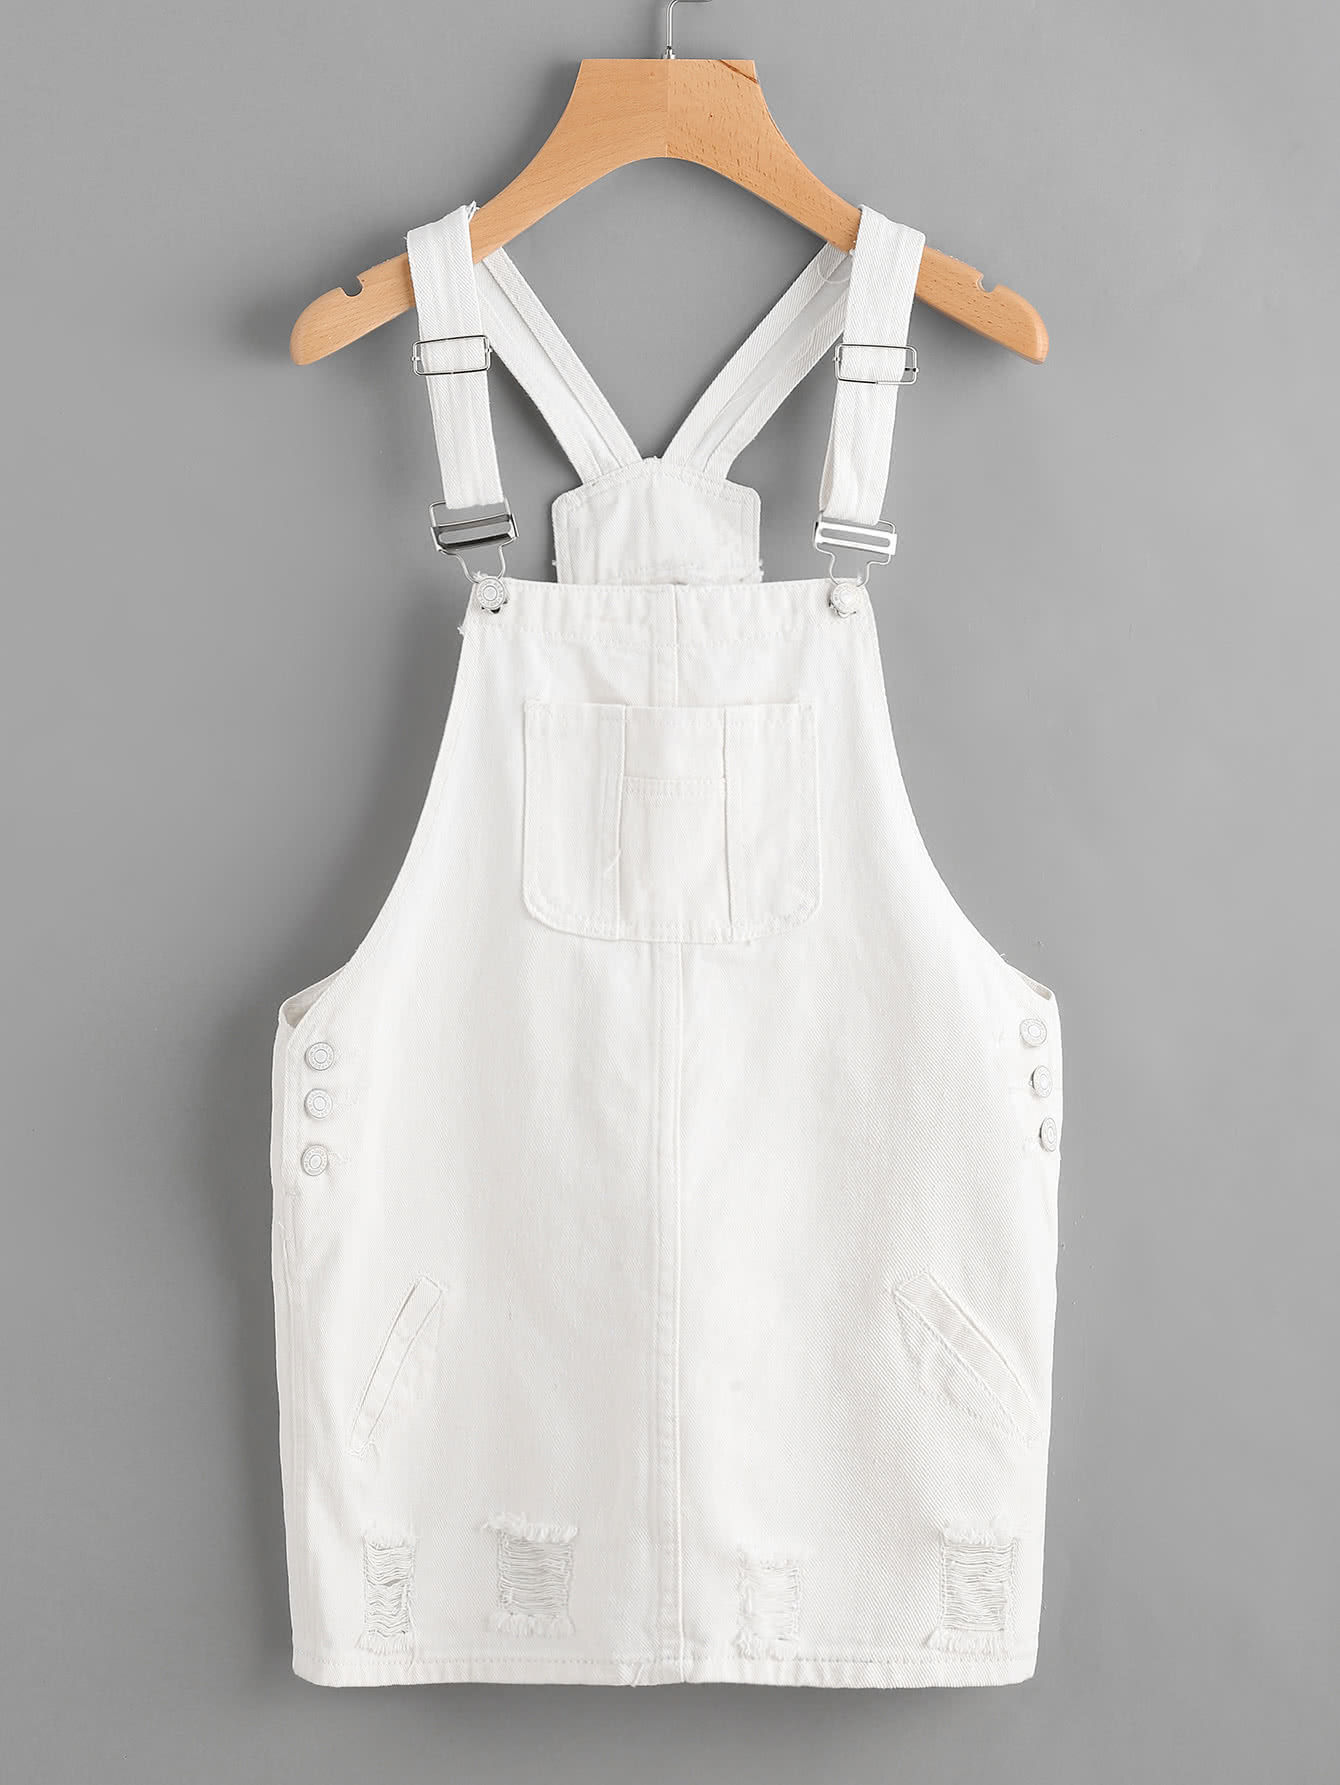 Badge Denim Overall Dress With Pockets dress170524003